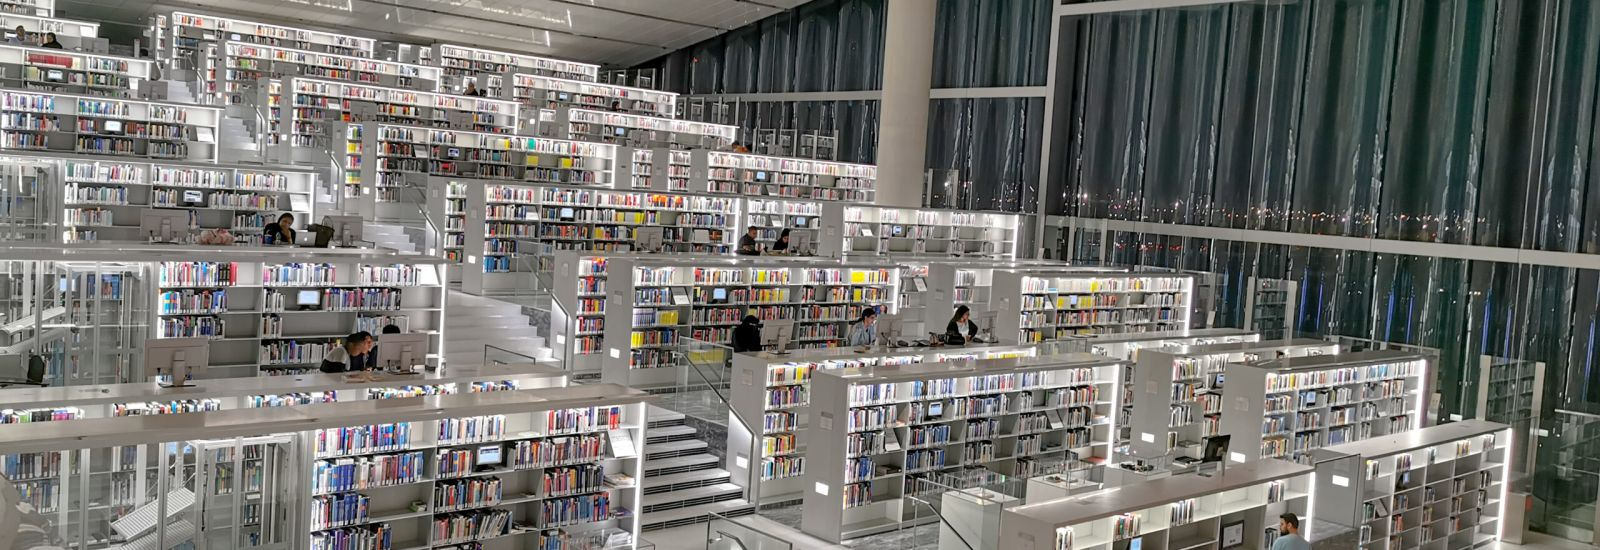 Interior of the National Library of Qatar